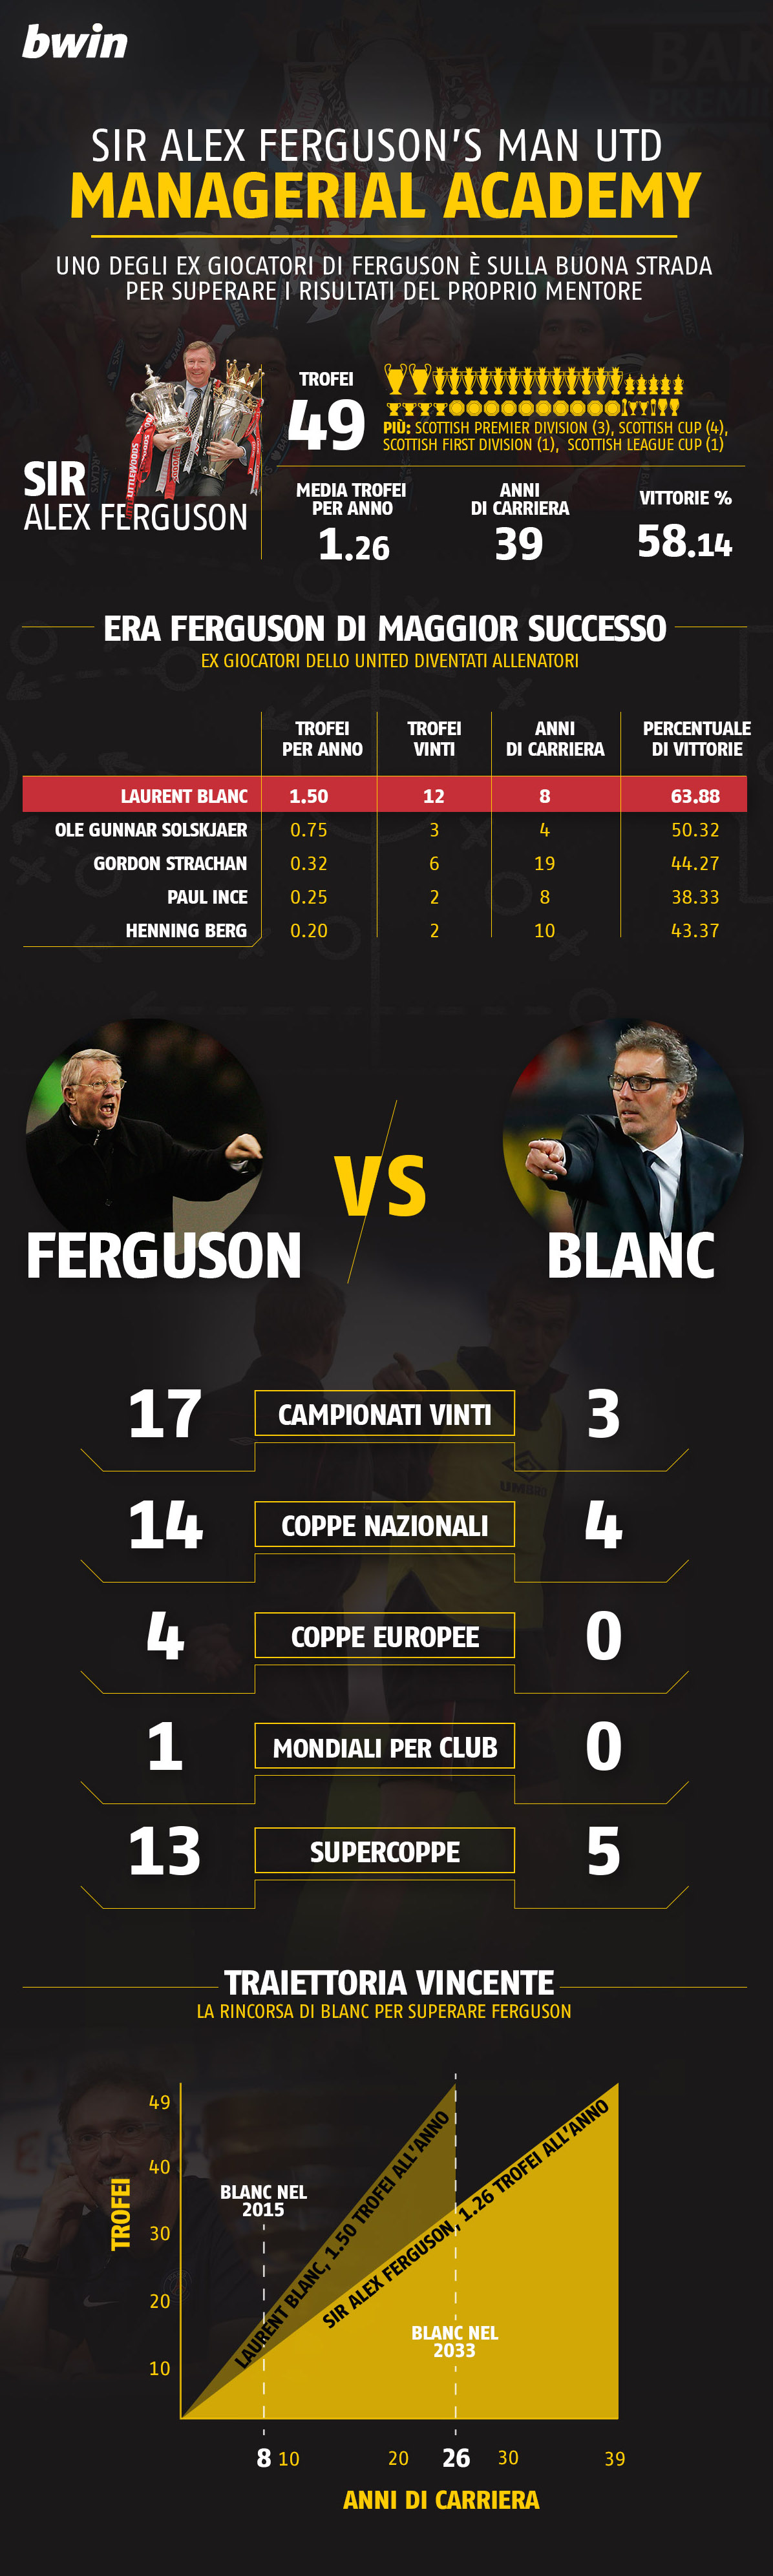 Bwin-Fergie-PlayerManagers copia